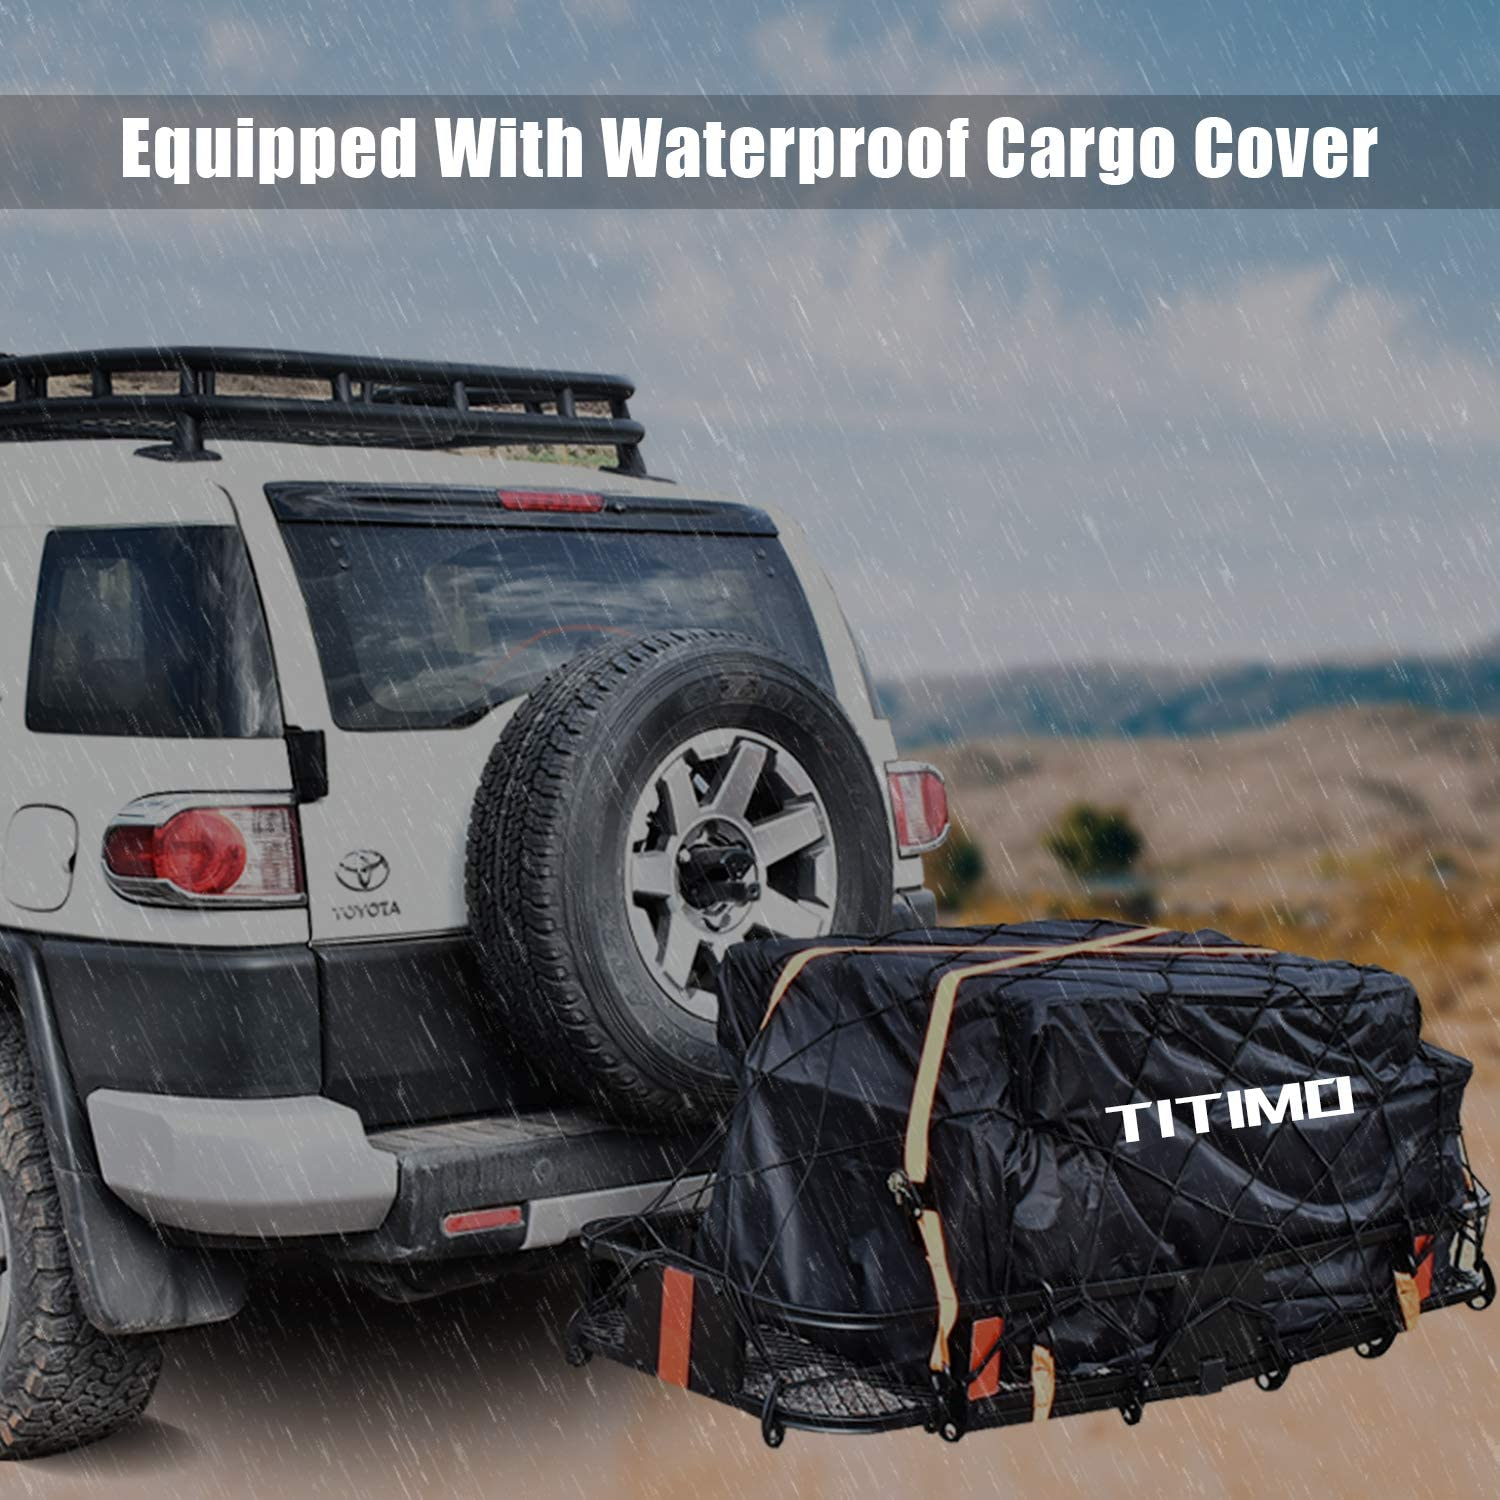 Truck Luggage Basket Rack Fits 2 Receiver Car Includes Cargo Net, Ratchet Straps, Waterproof Cover - 550LB Capacity TITIMO 60x21x6 Folding Hitch Mount Cargo Carrier Rear Cargo Rack for SUV